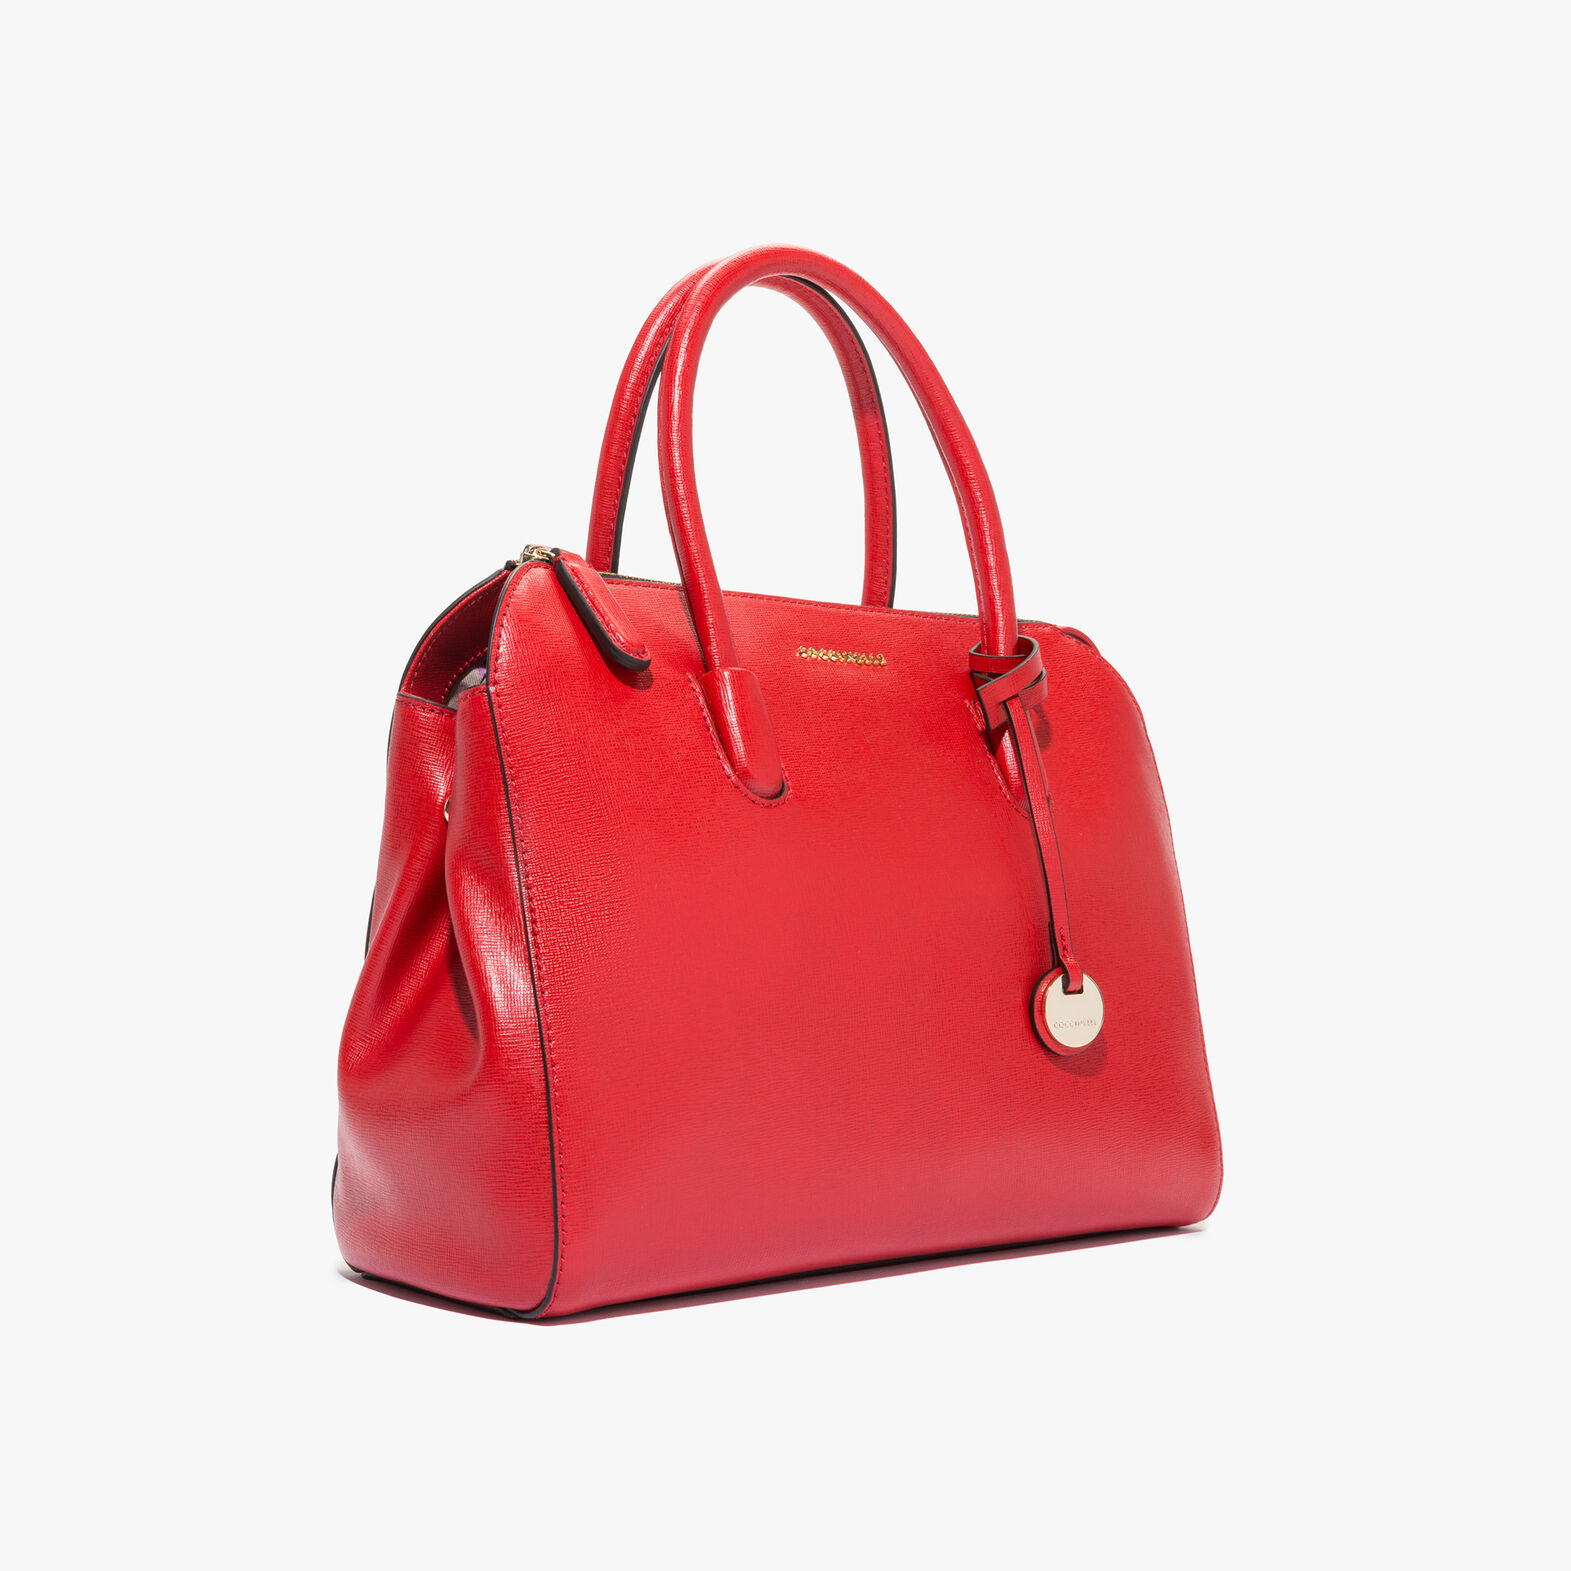 Coccinelle Clementine saffiano leather handbag